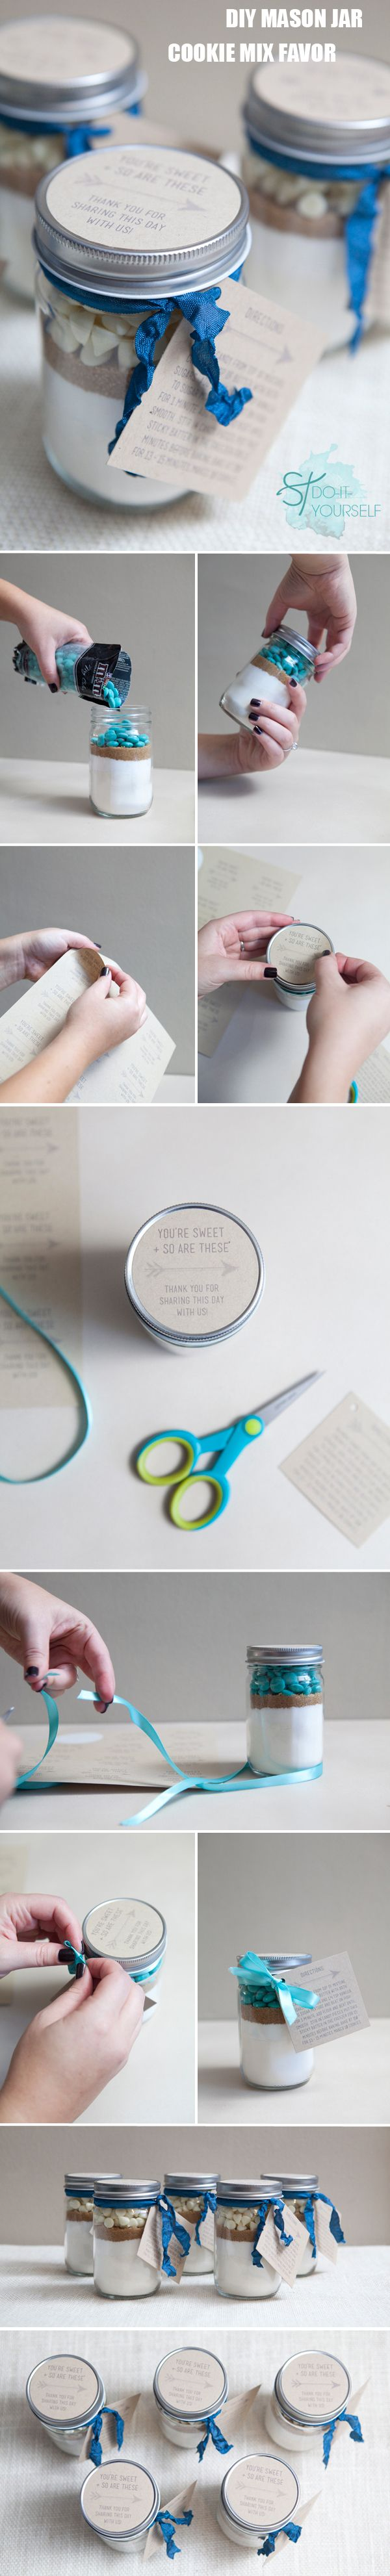 326 best wedding favors images on Pinterest | Wedding ideas, Wedding ...